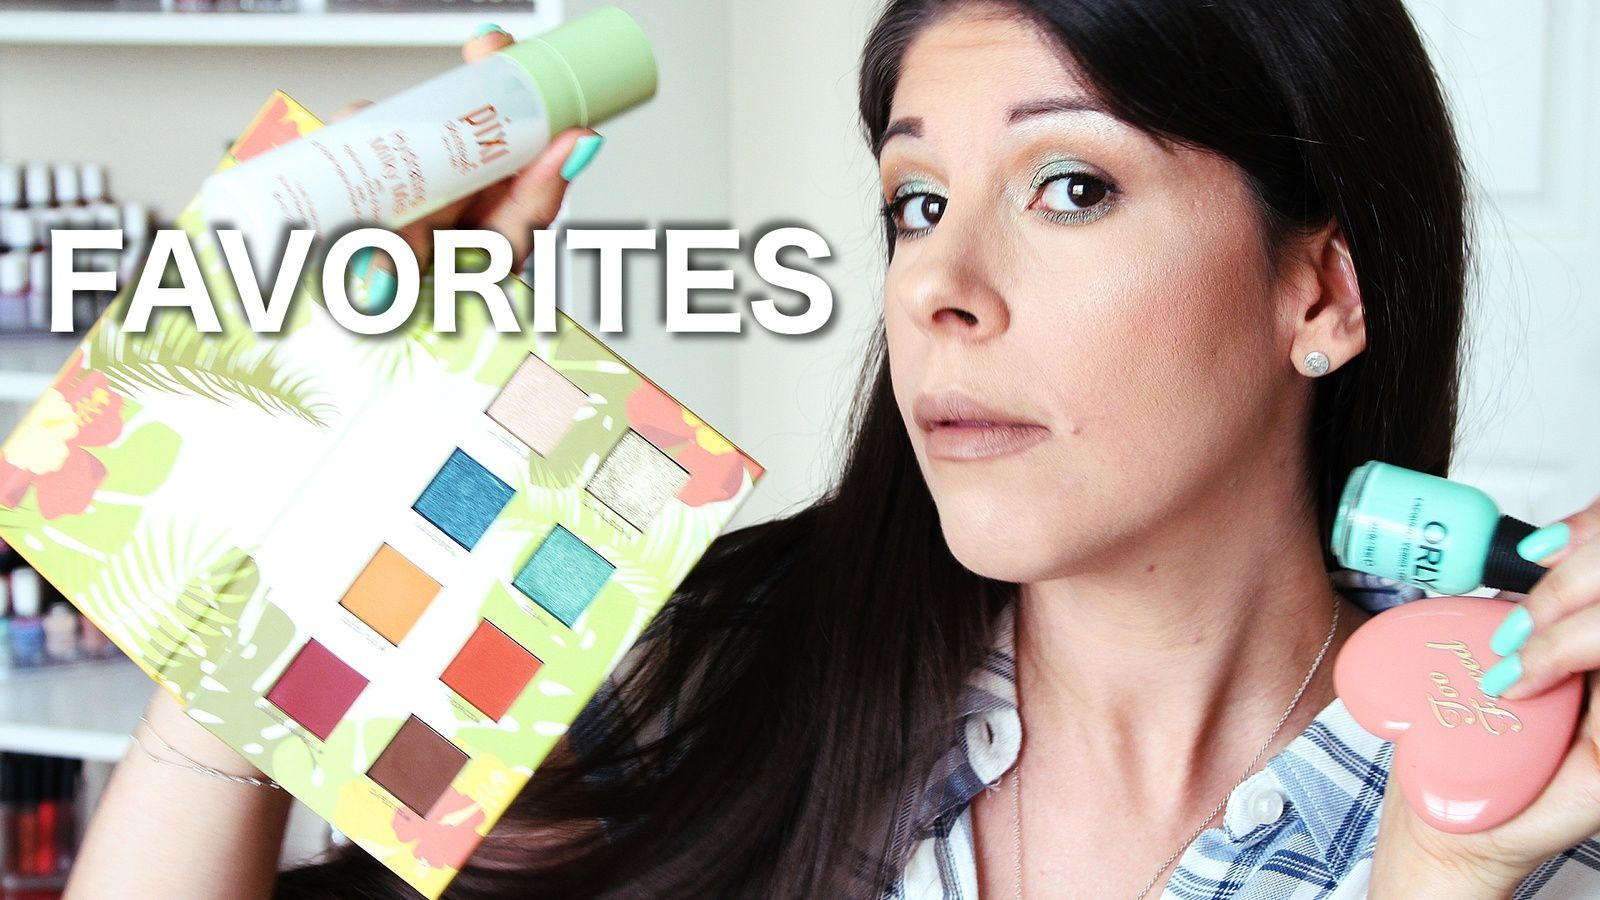 JULY BEAUTY FAVORITES! 2018